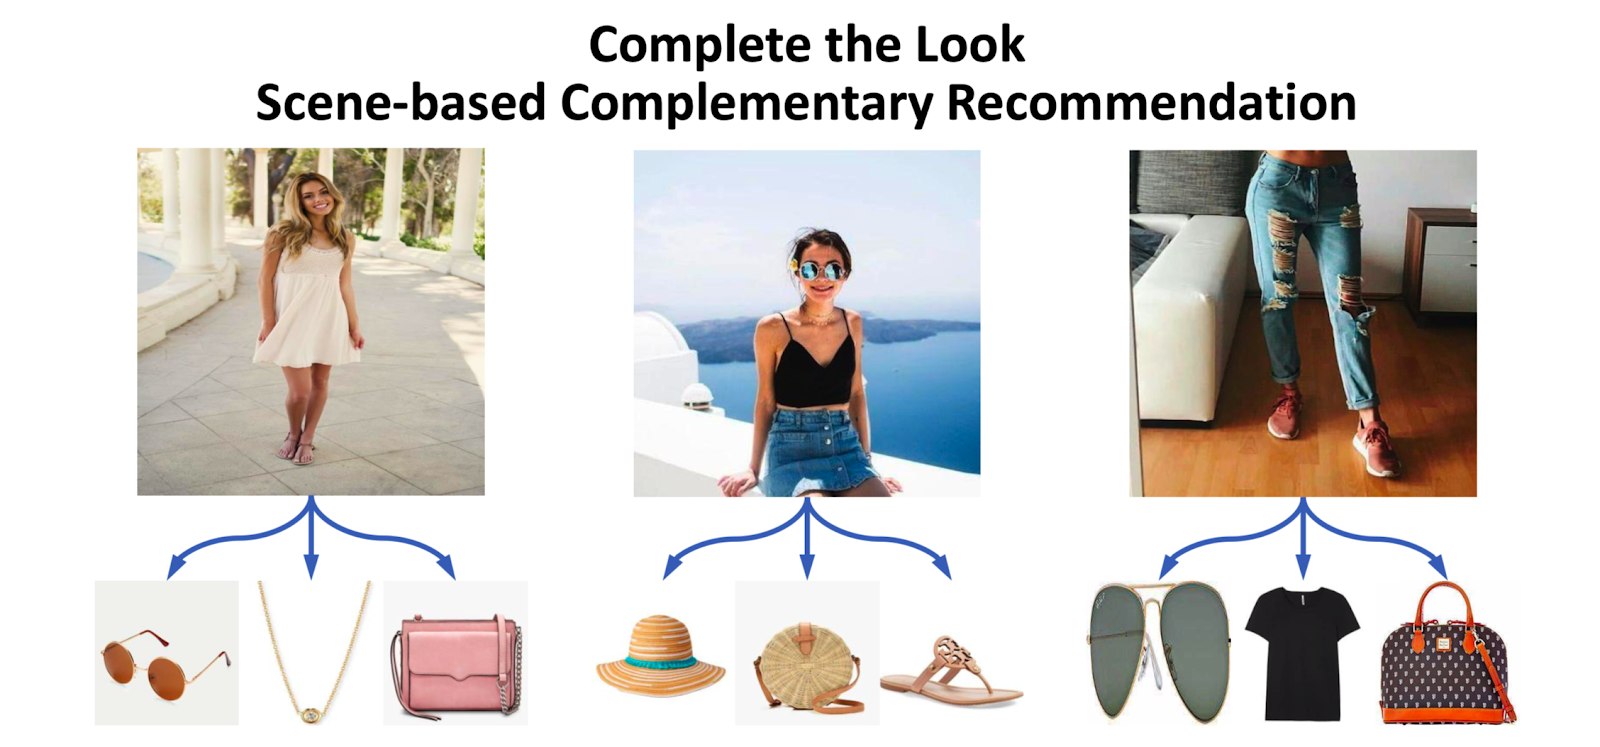 Introducing Complete the Look: a scene-based complementary recommendation system